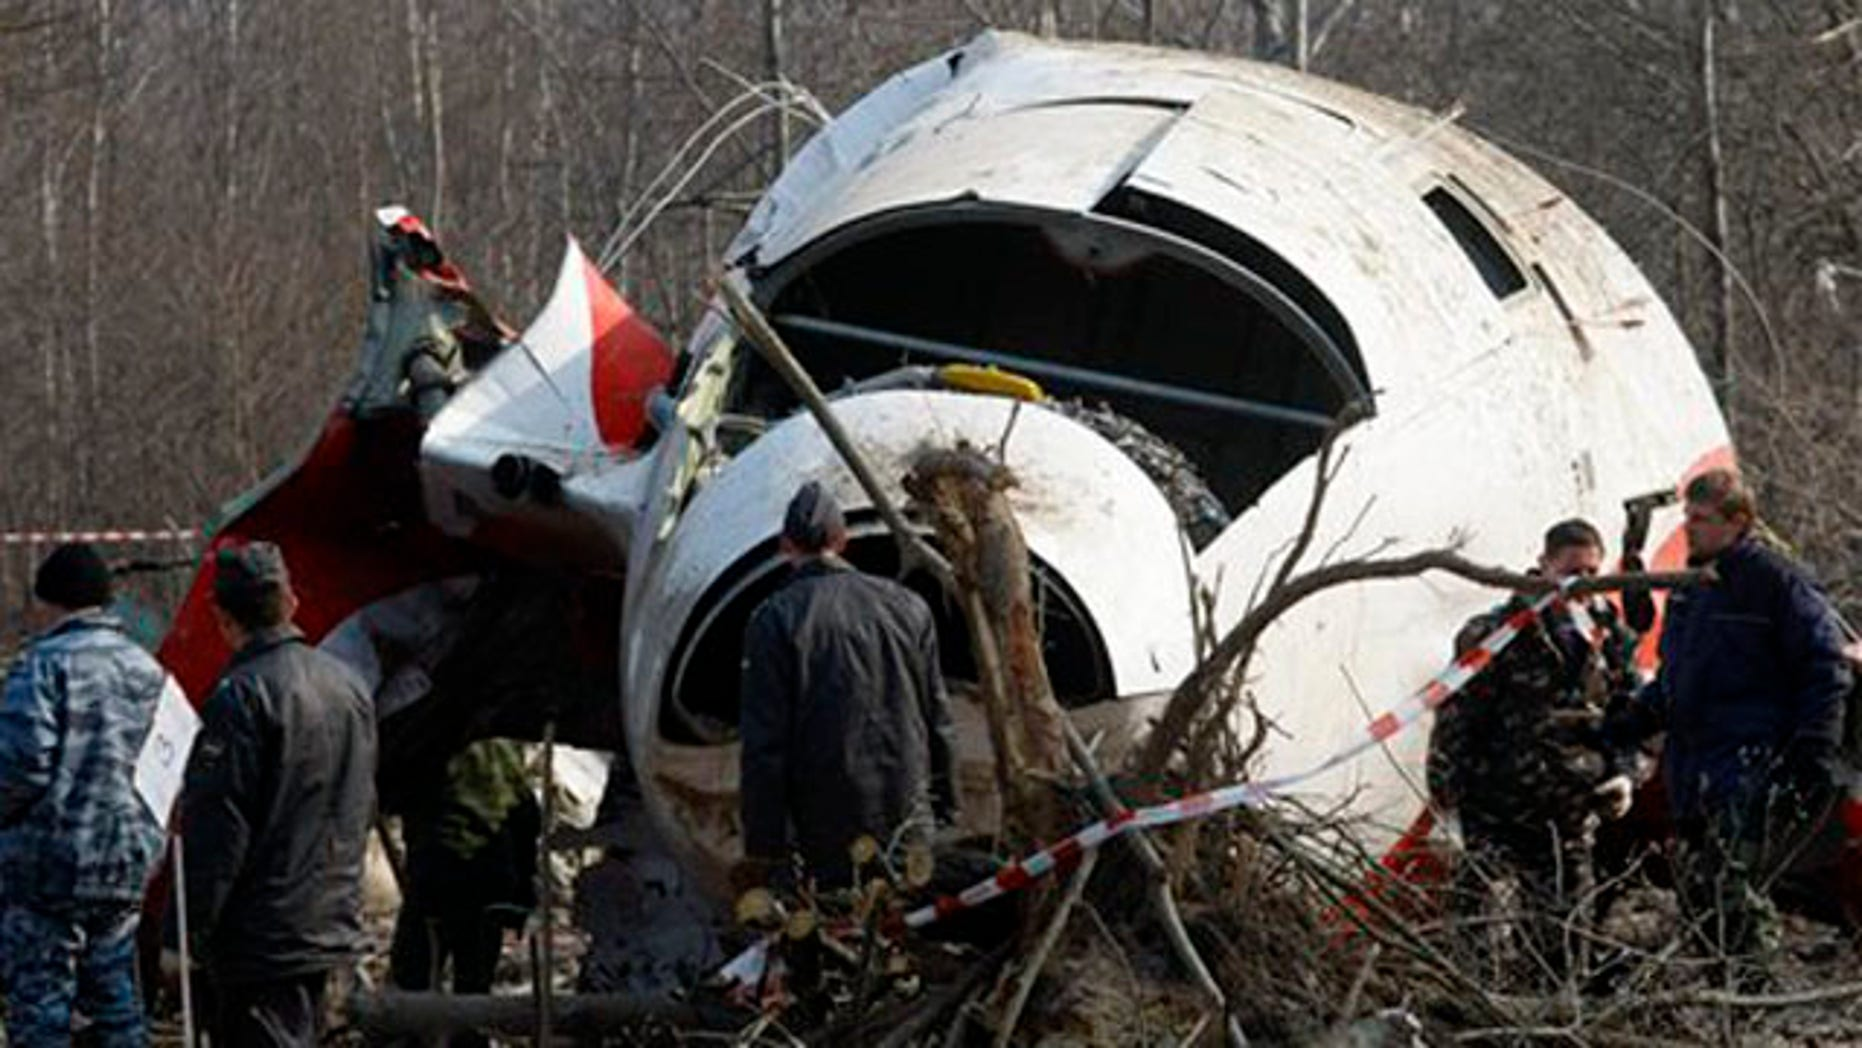 April 14, 2010: In this file picture emergency ministry workers prepare to load the wreckage of the Polish presidential plane onto a transporter just outside the Smolensk airport, western Russia.